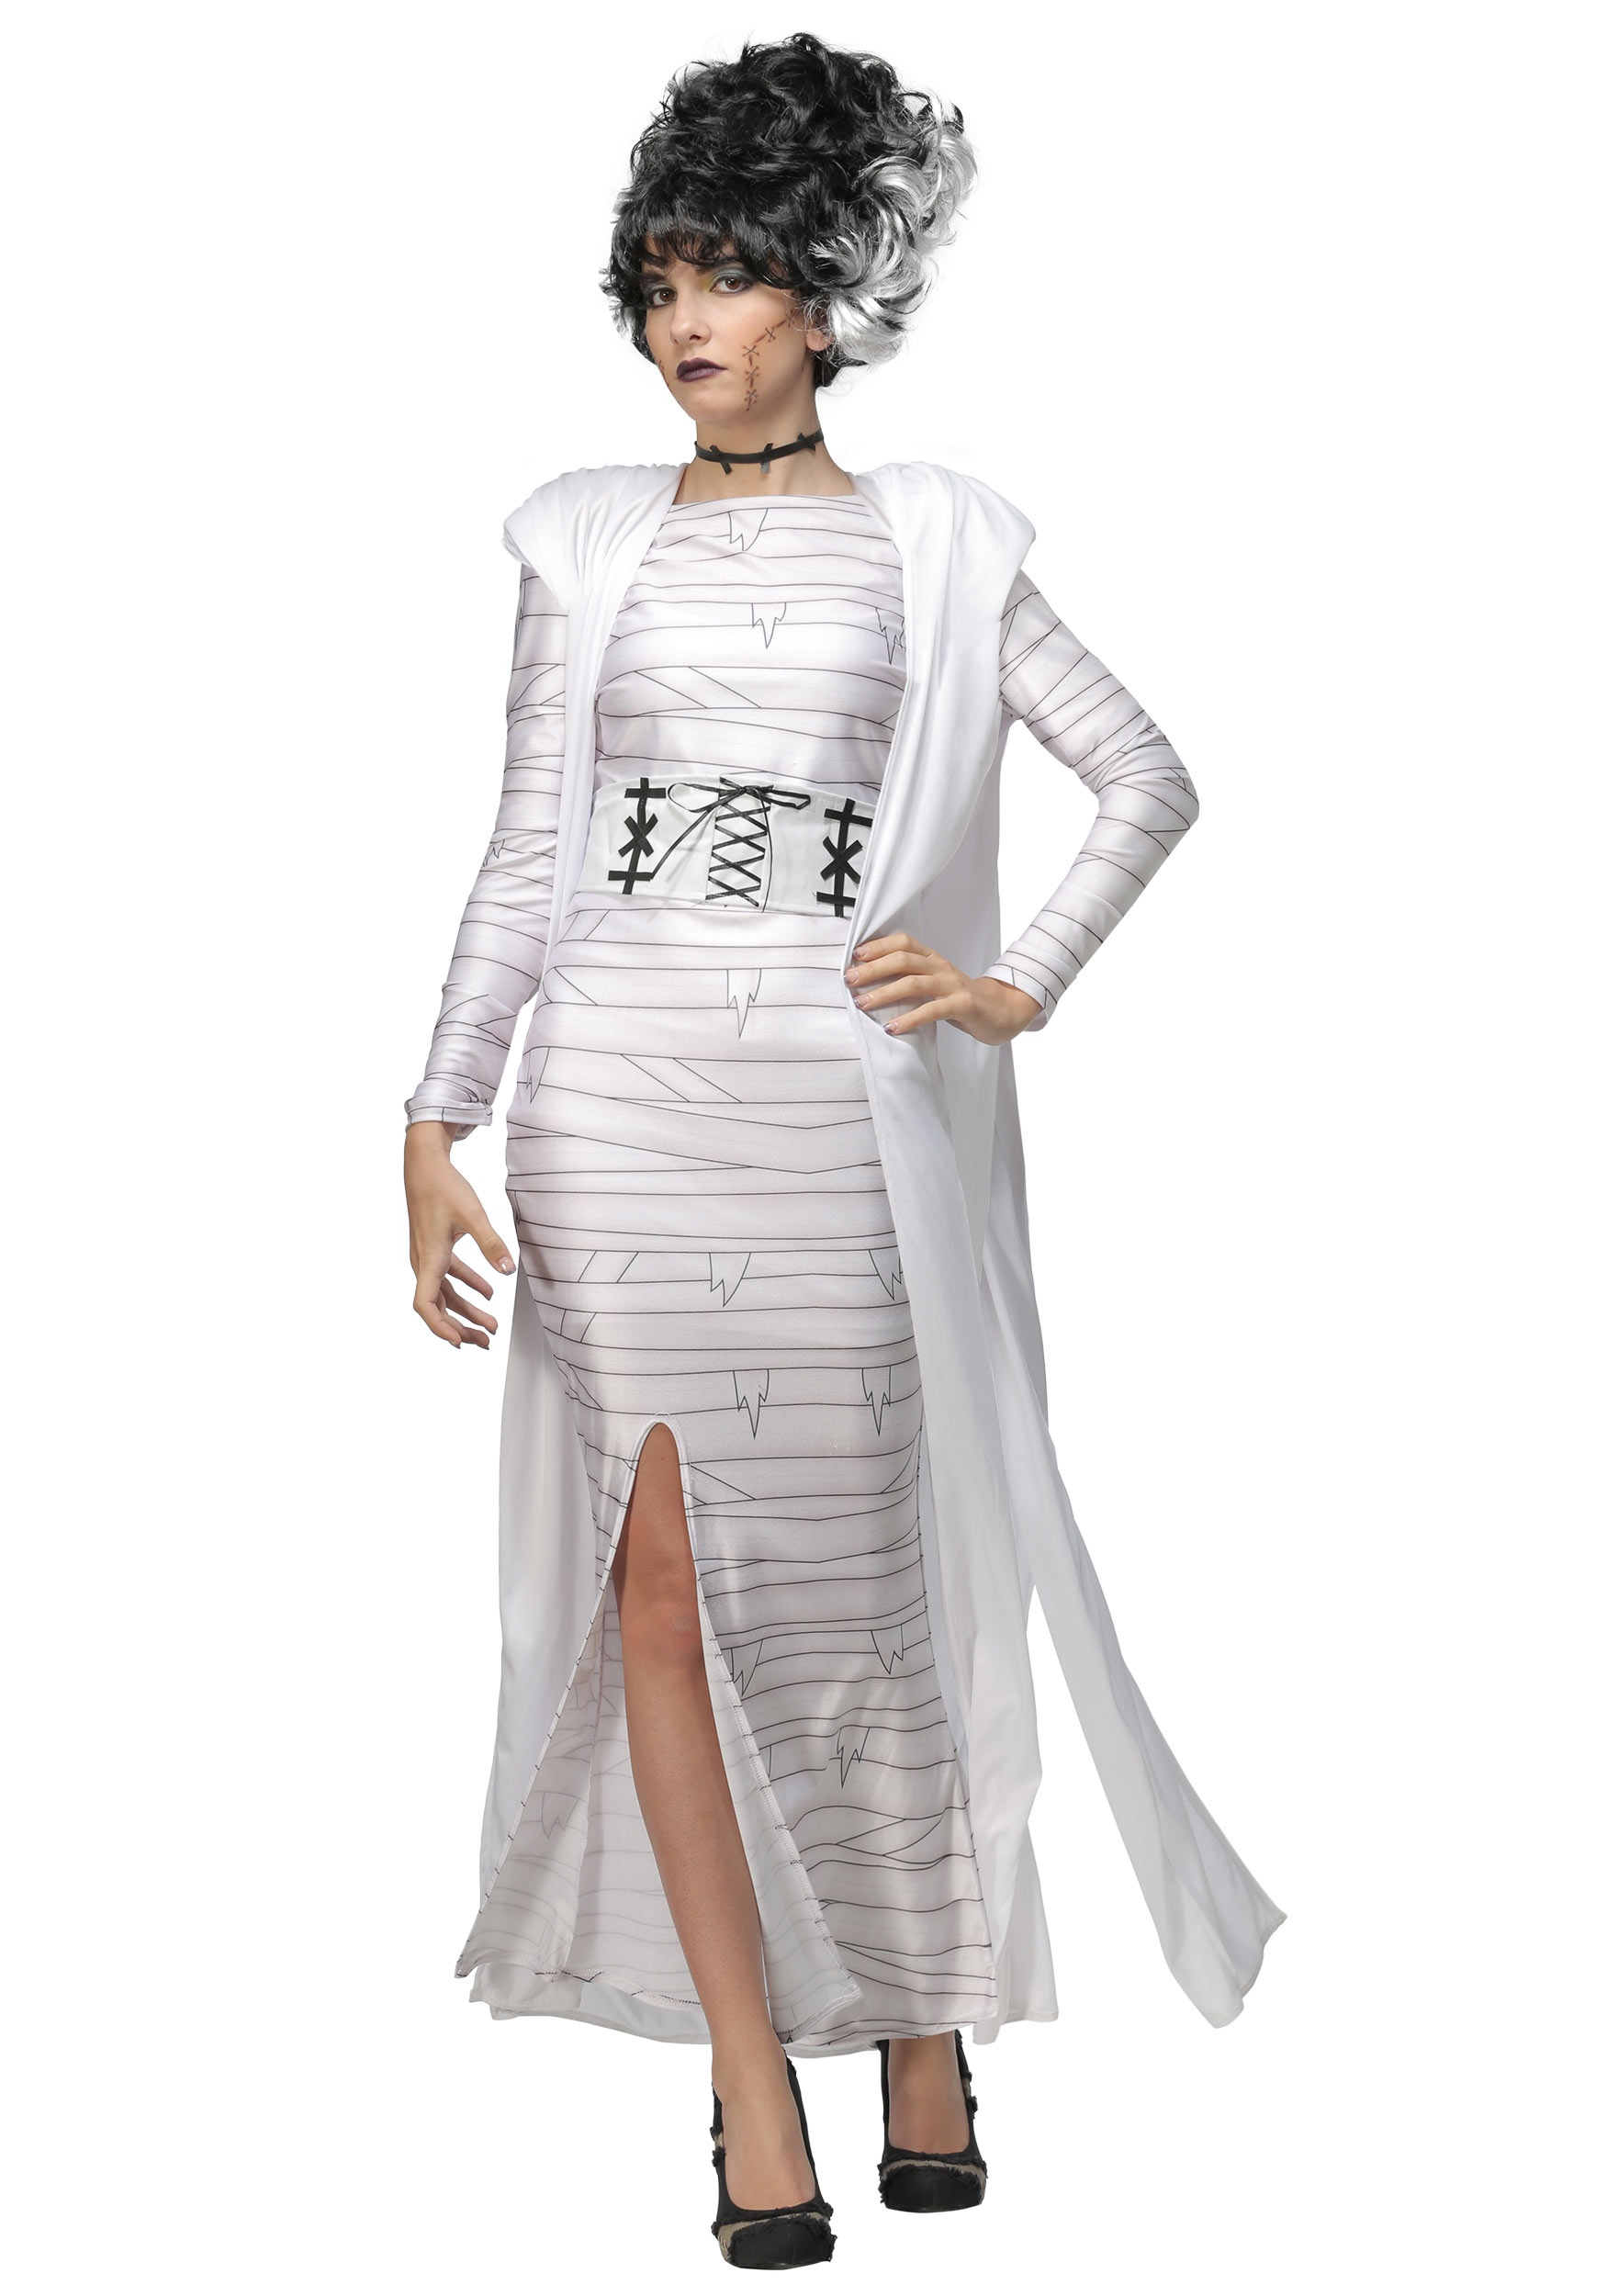 Bride of frankenstein costume, frankenstein bride monster costume